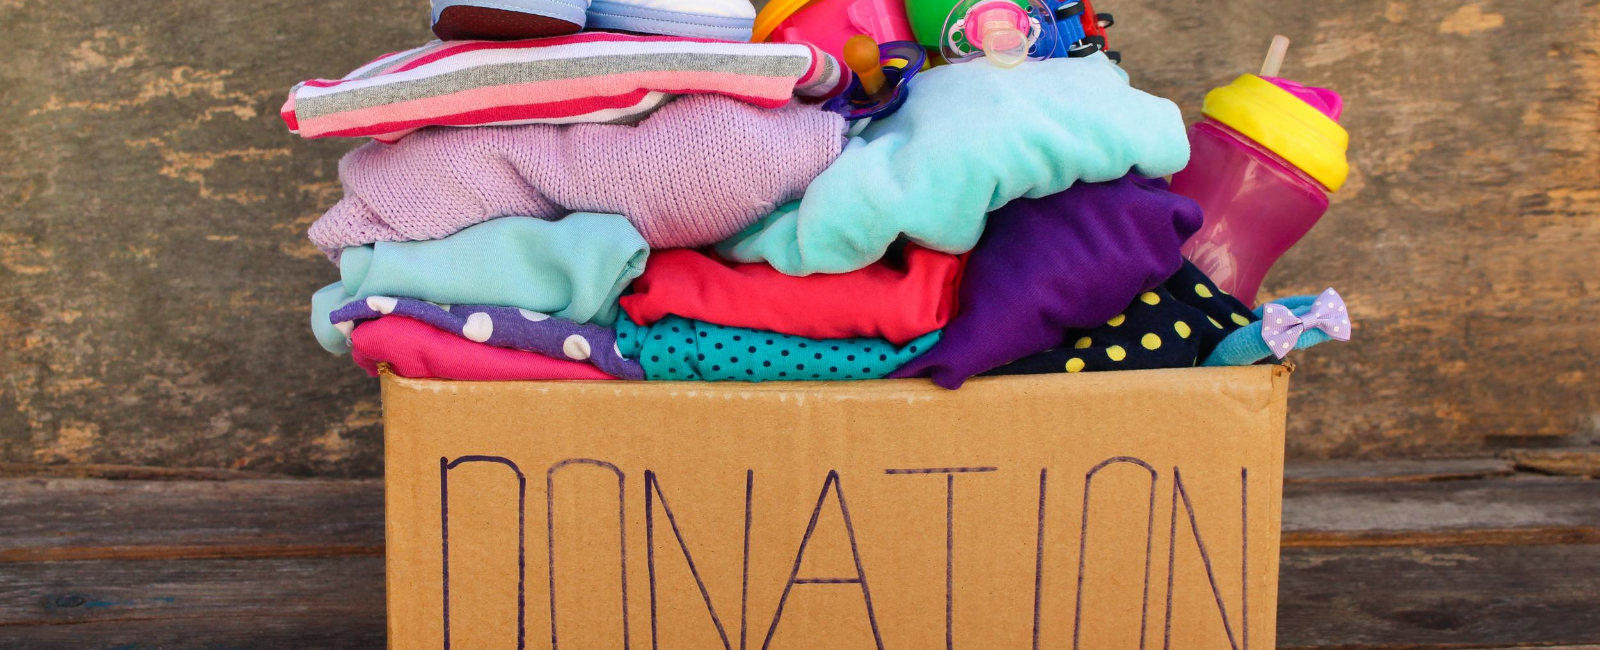 Photo of box of clothing for donation